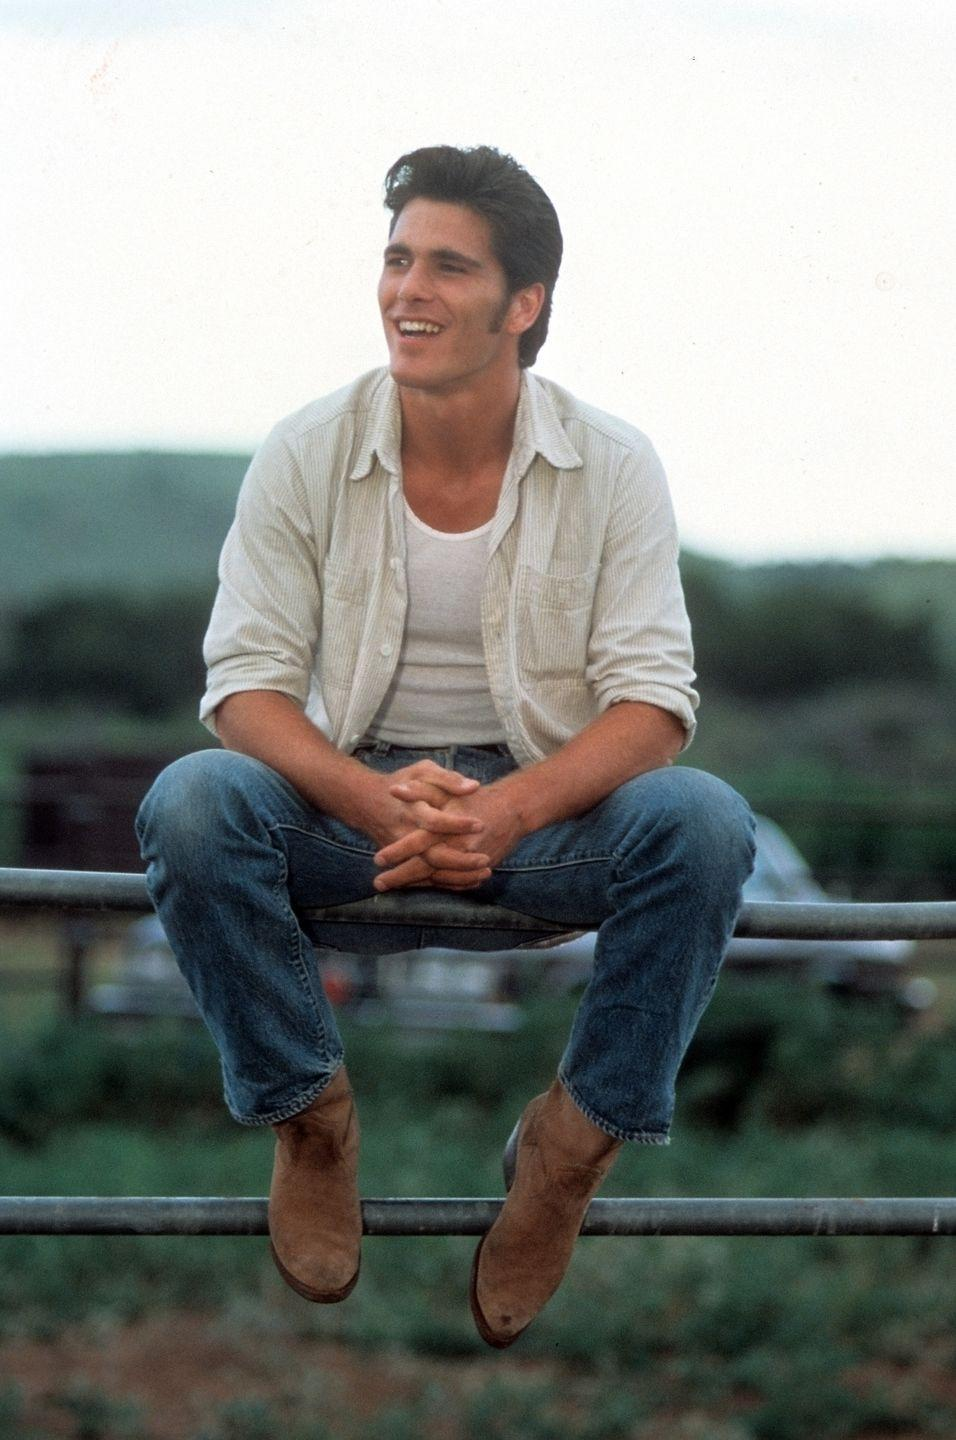 <p>One of the original '80s heartthrobs, Michael Schoeffling is best known for being Jake Ryan, Samantha Baker's high school crush in <em>Sixteen Candles. </em> He started his career in the mid-80s as a model before moving into acting. He enjoyed a few other acting roles, starring alongside Winona Ryder in <em>Mermaids</em> and Robert Duvall in <em>Let's Get Harry.</em></p>